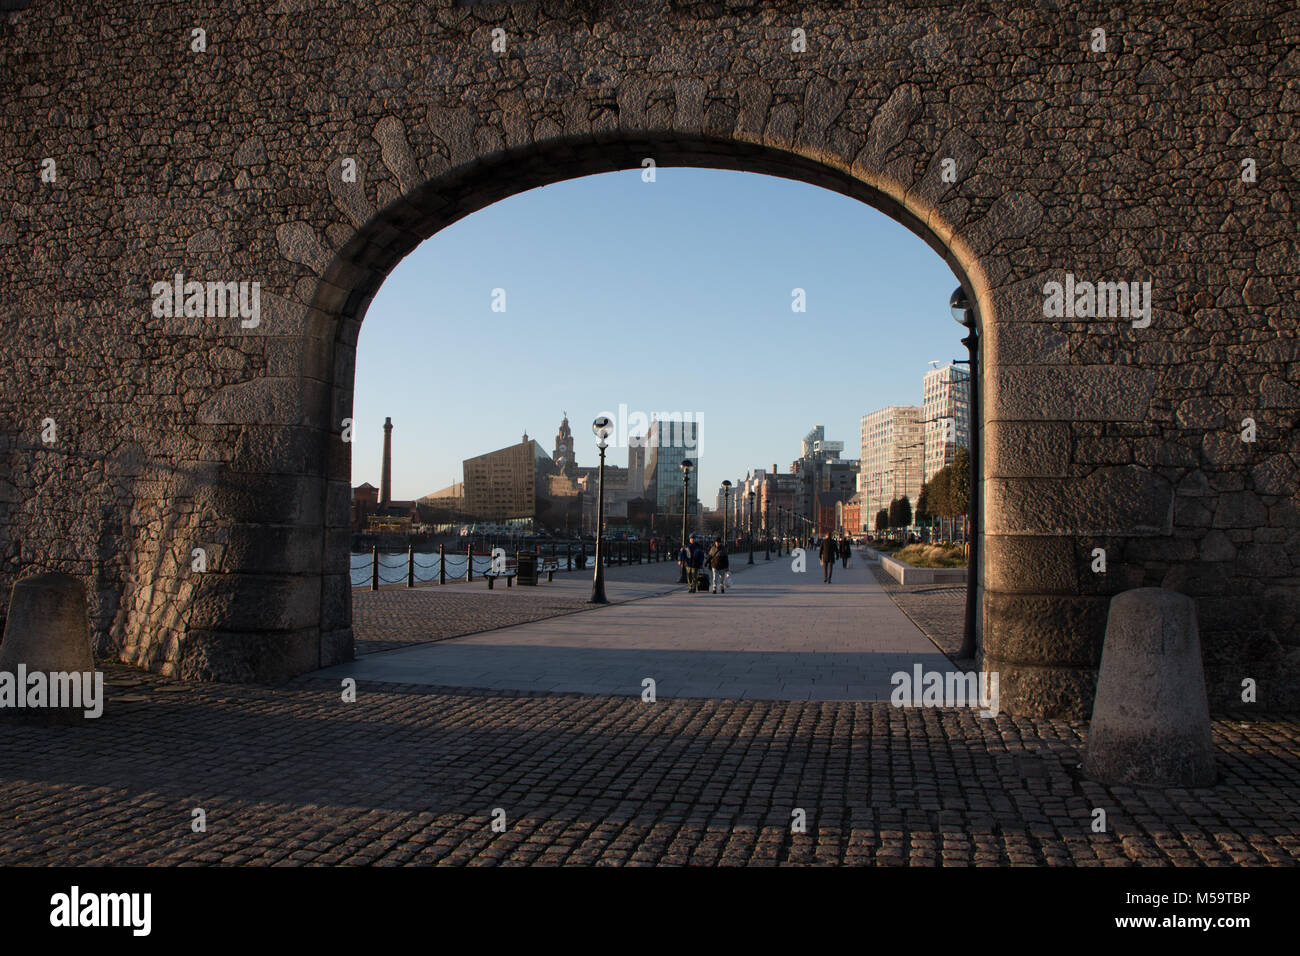 Liverpool, Lancashire, United Kingdom, 20th February 2018   (File Image)             Liverpool is set to bring back Stock Photo